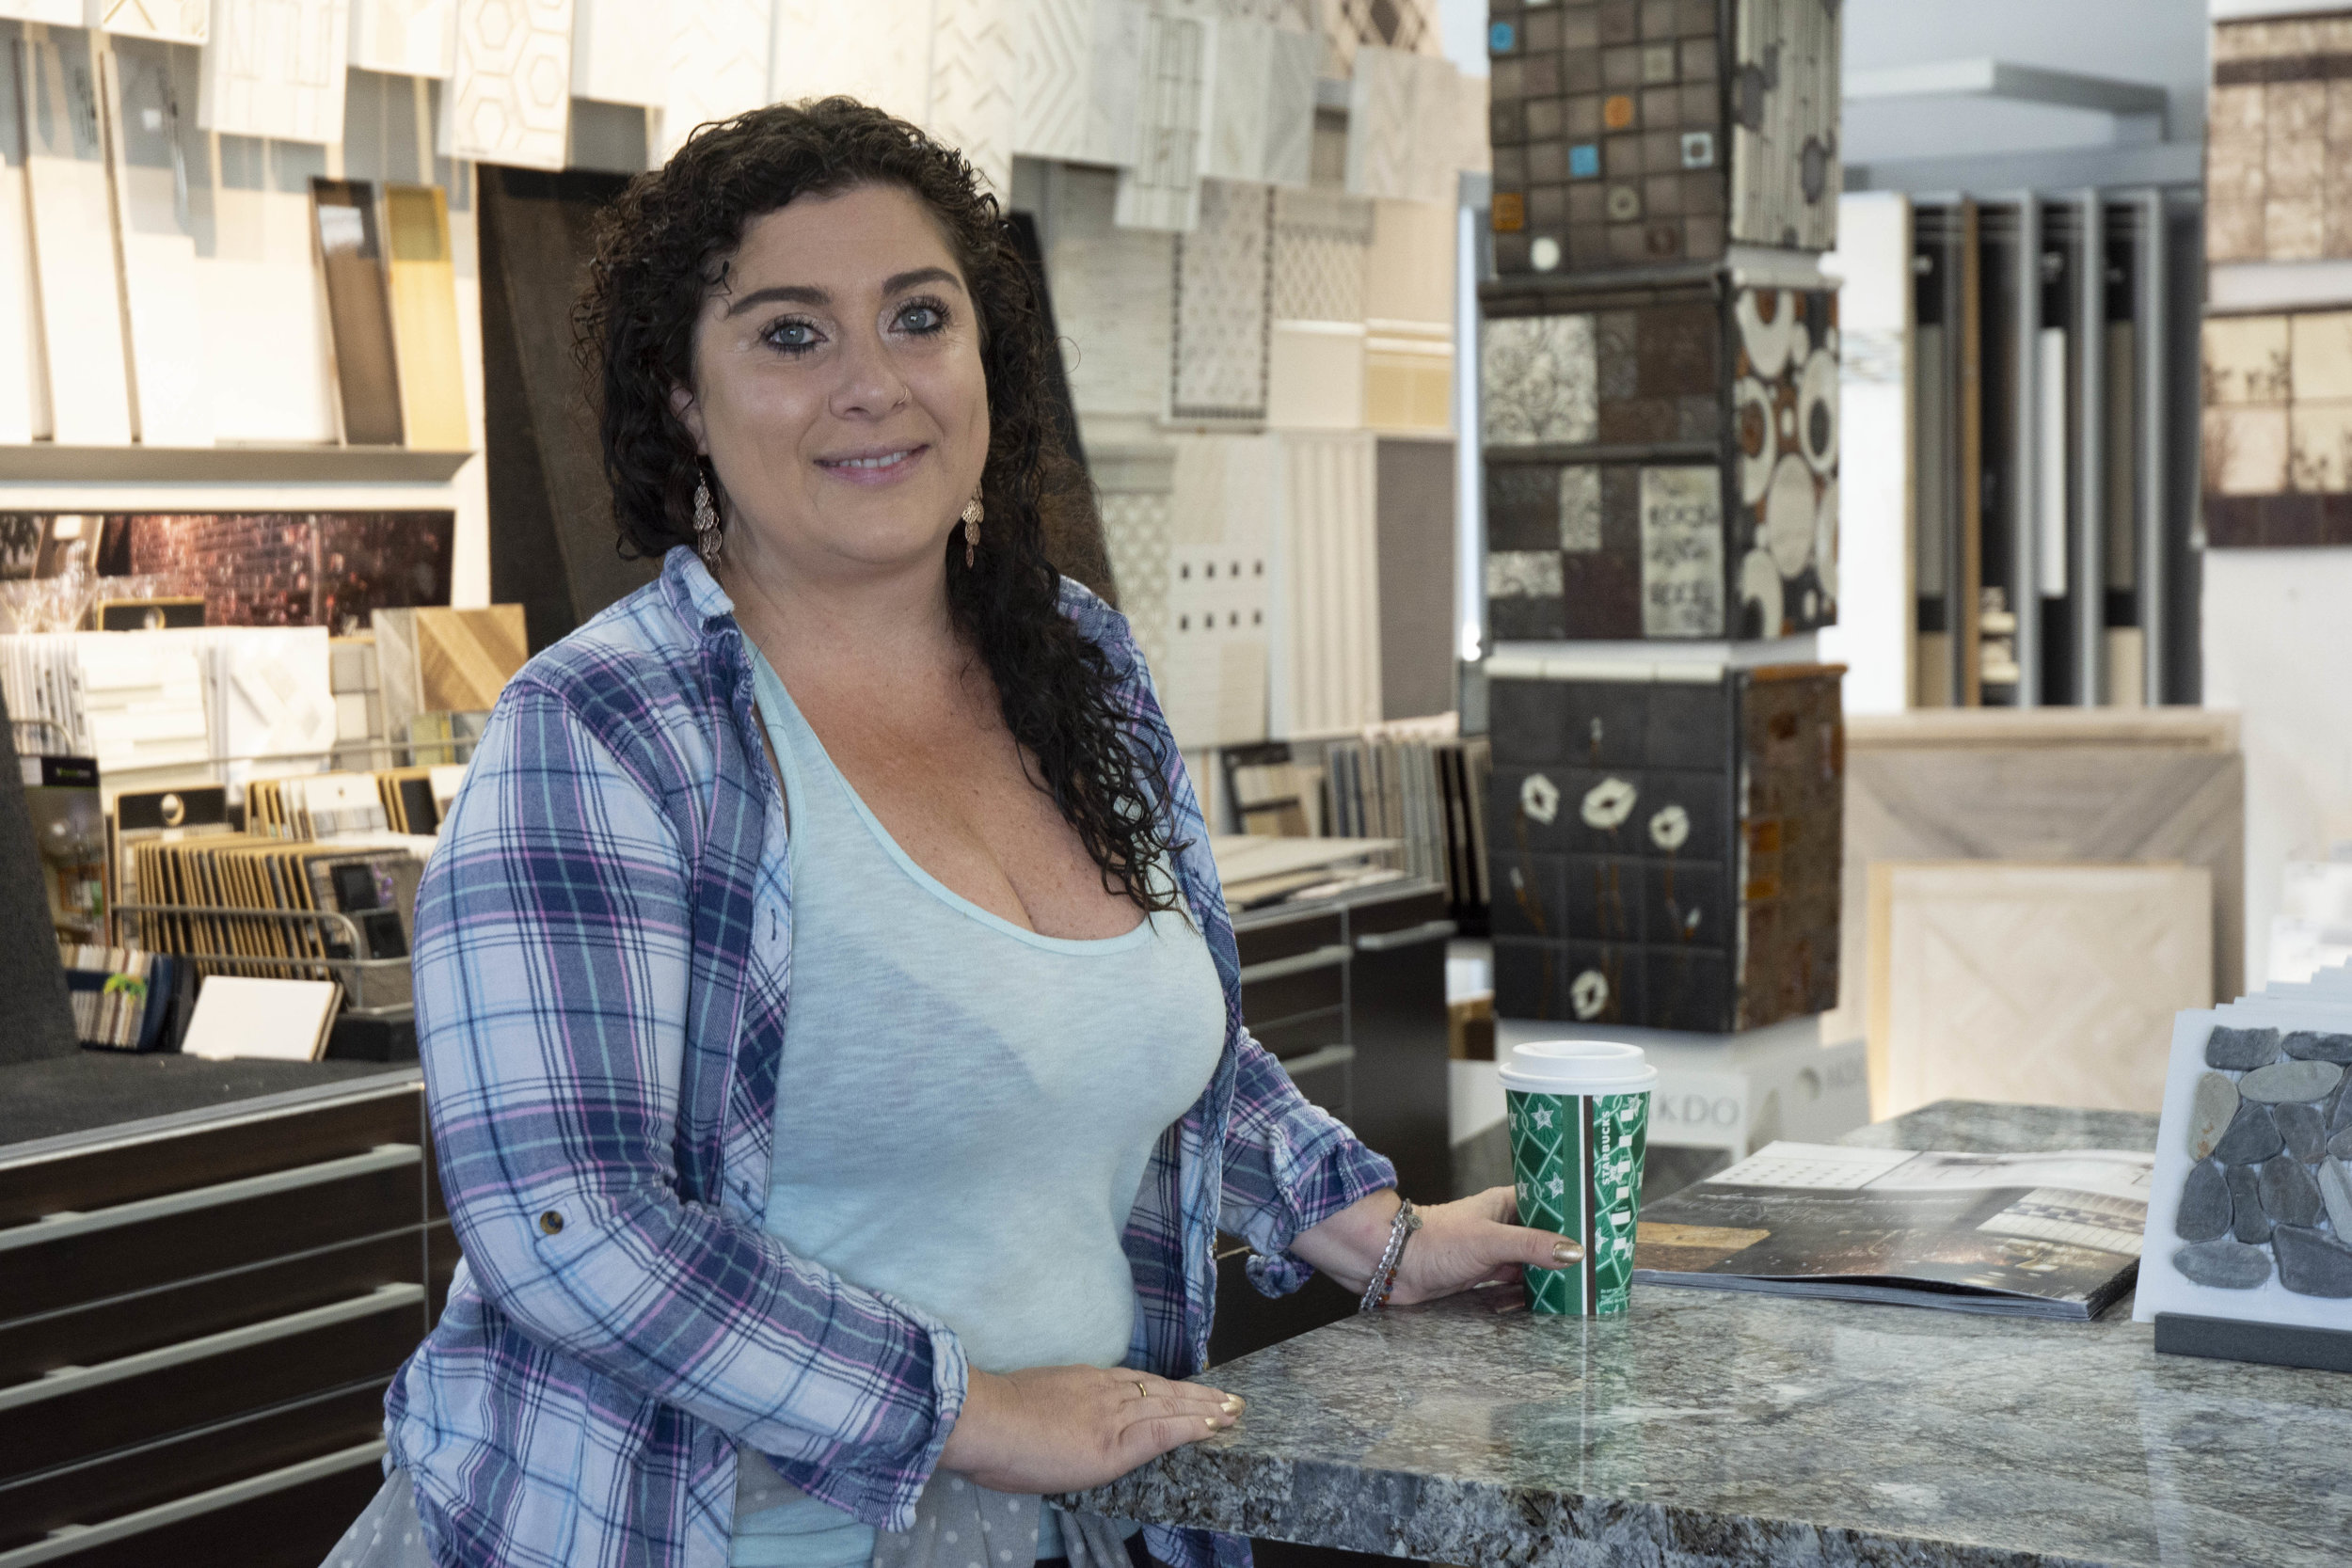 """We're at my business called Loka Tile Group and it's basically where I'm able to also store many of the materials that we use for Loka Cares,"" Angela Handler said. ""So …. loca is a Hispanic term for crazy. When I was working for a company out of Spain, they used to call me the crazy tile American girl. So when I opened up this business I wanted a four letter name, very modern and simple and we thought of Loka because it does mean crazy ....because I'm crazy for tile and this community obviously."""